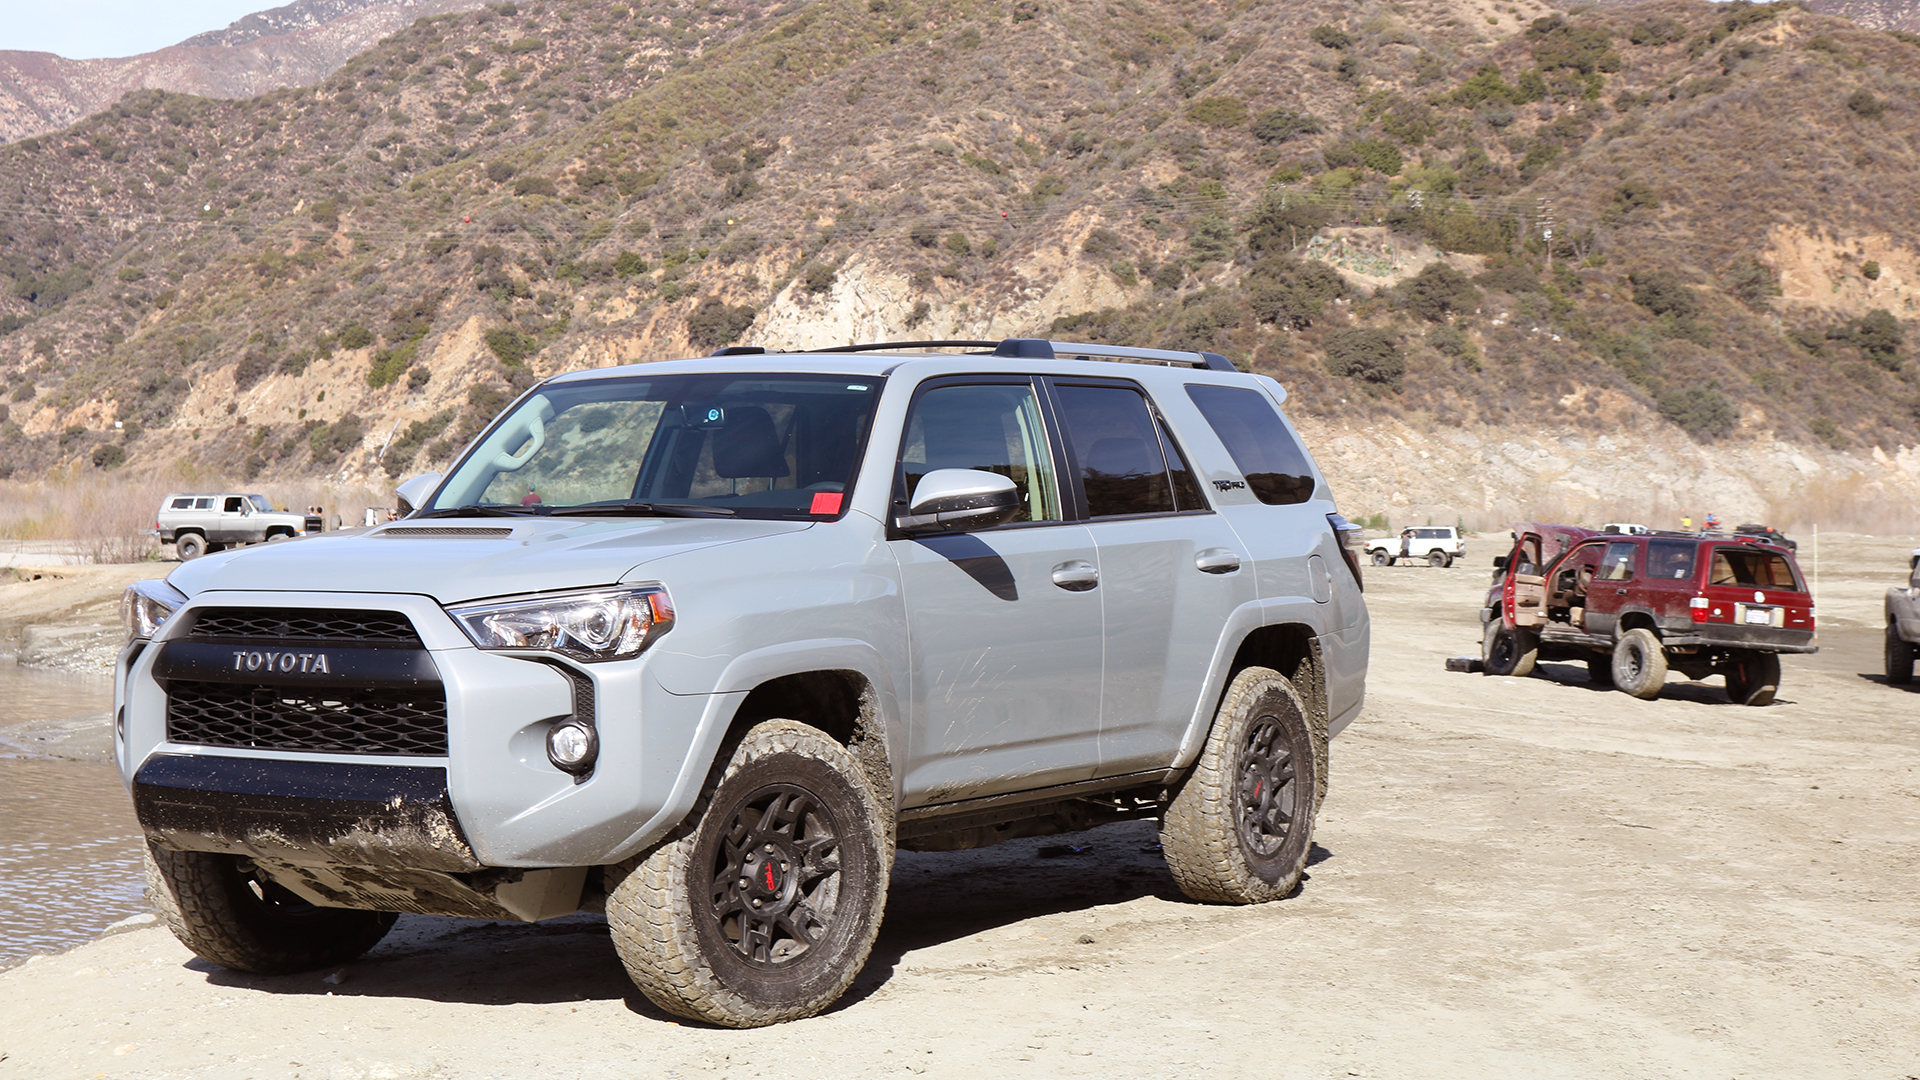 2017 toyota 4runner trd pro review old school off road goodness done right. Black Bedroom Furniture Sets. Home Design Ideas